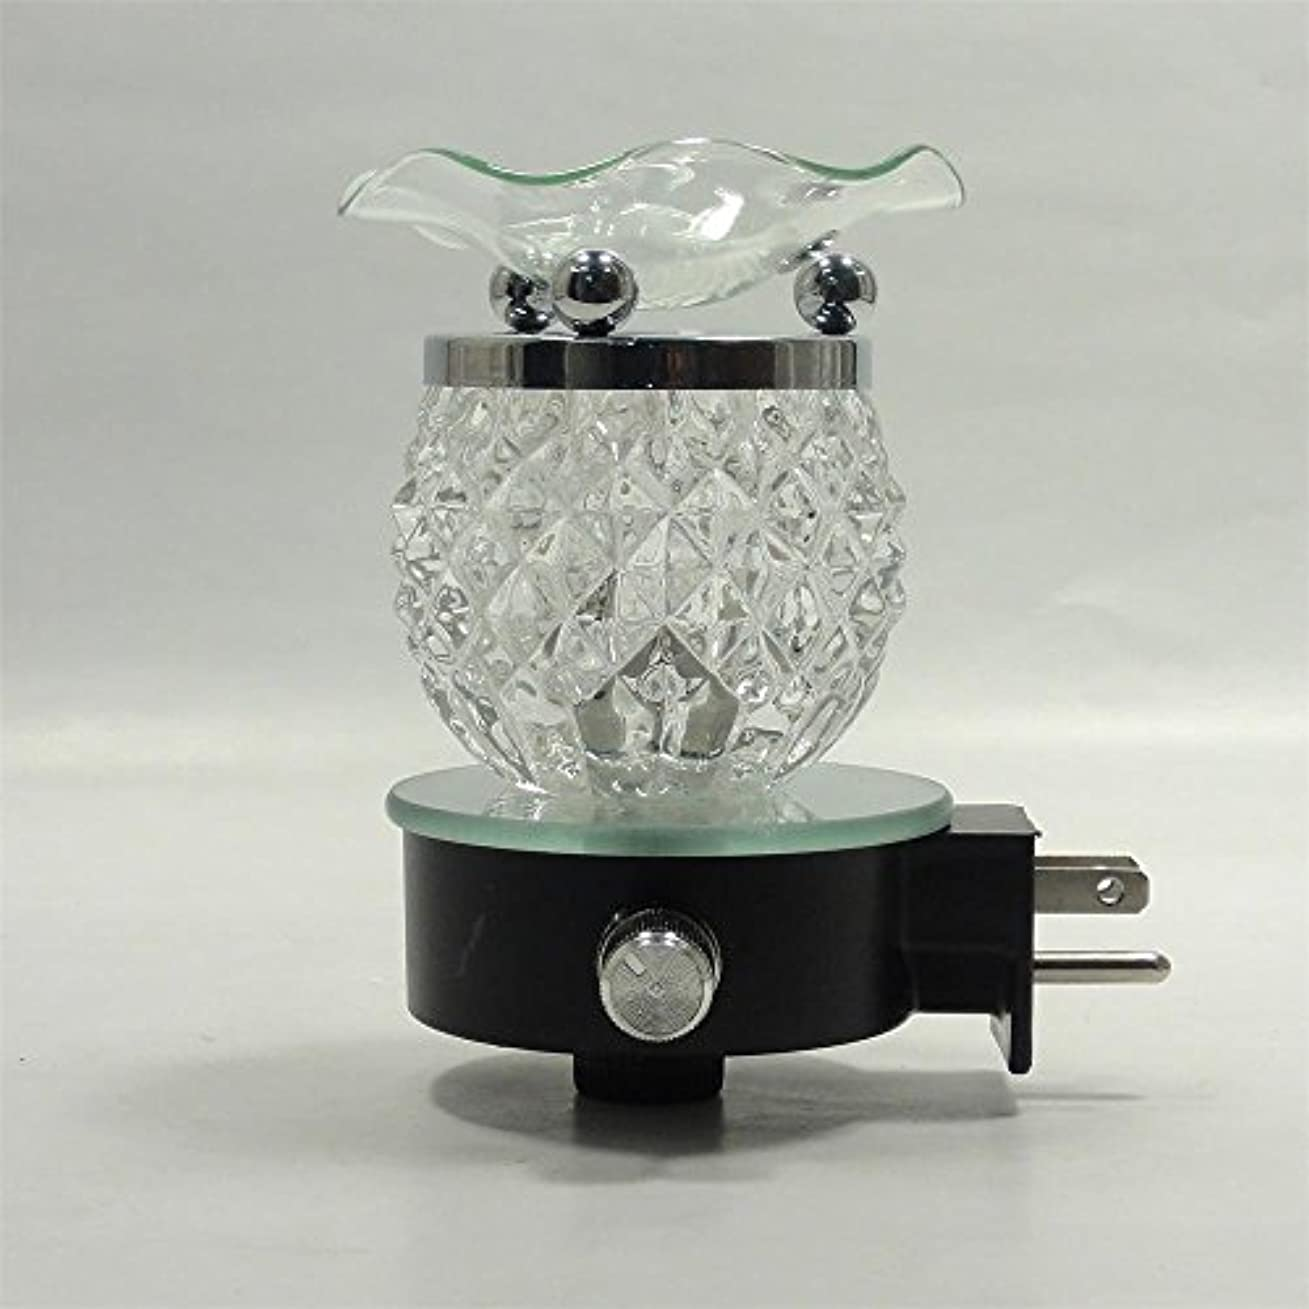 Electric Oil Warmer Burner Tart Diffuserアロマ香りつきFragrance Essential Oils壁プラグinランプ